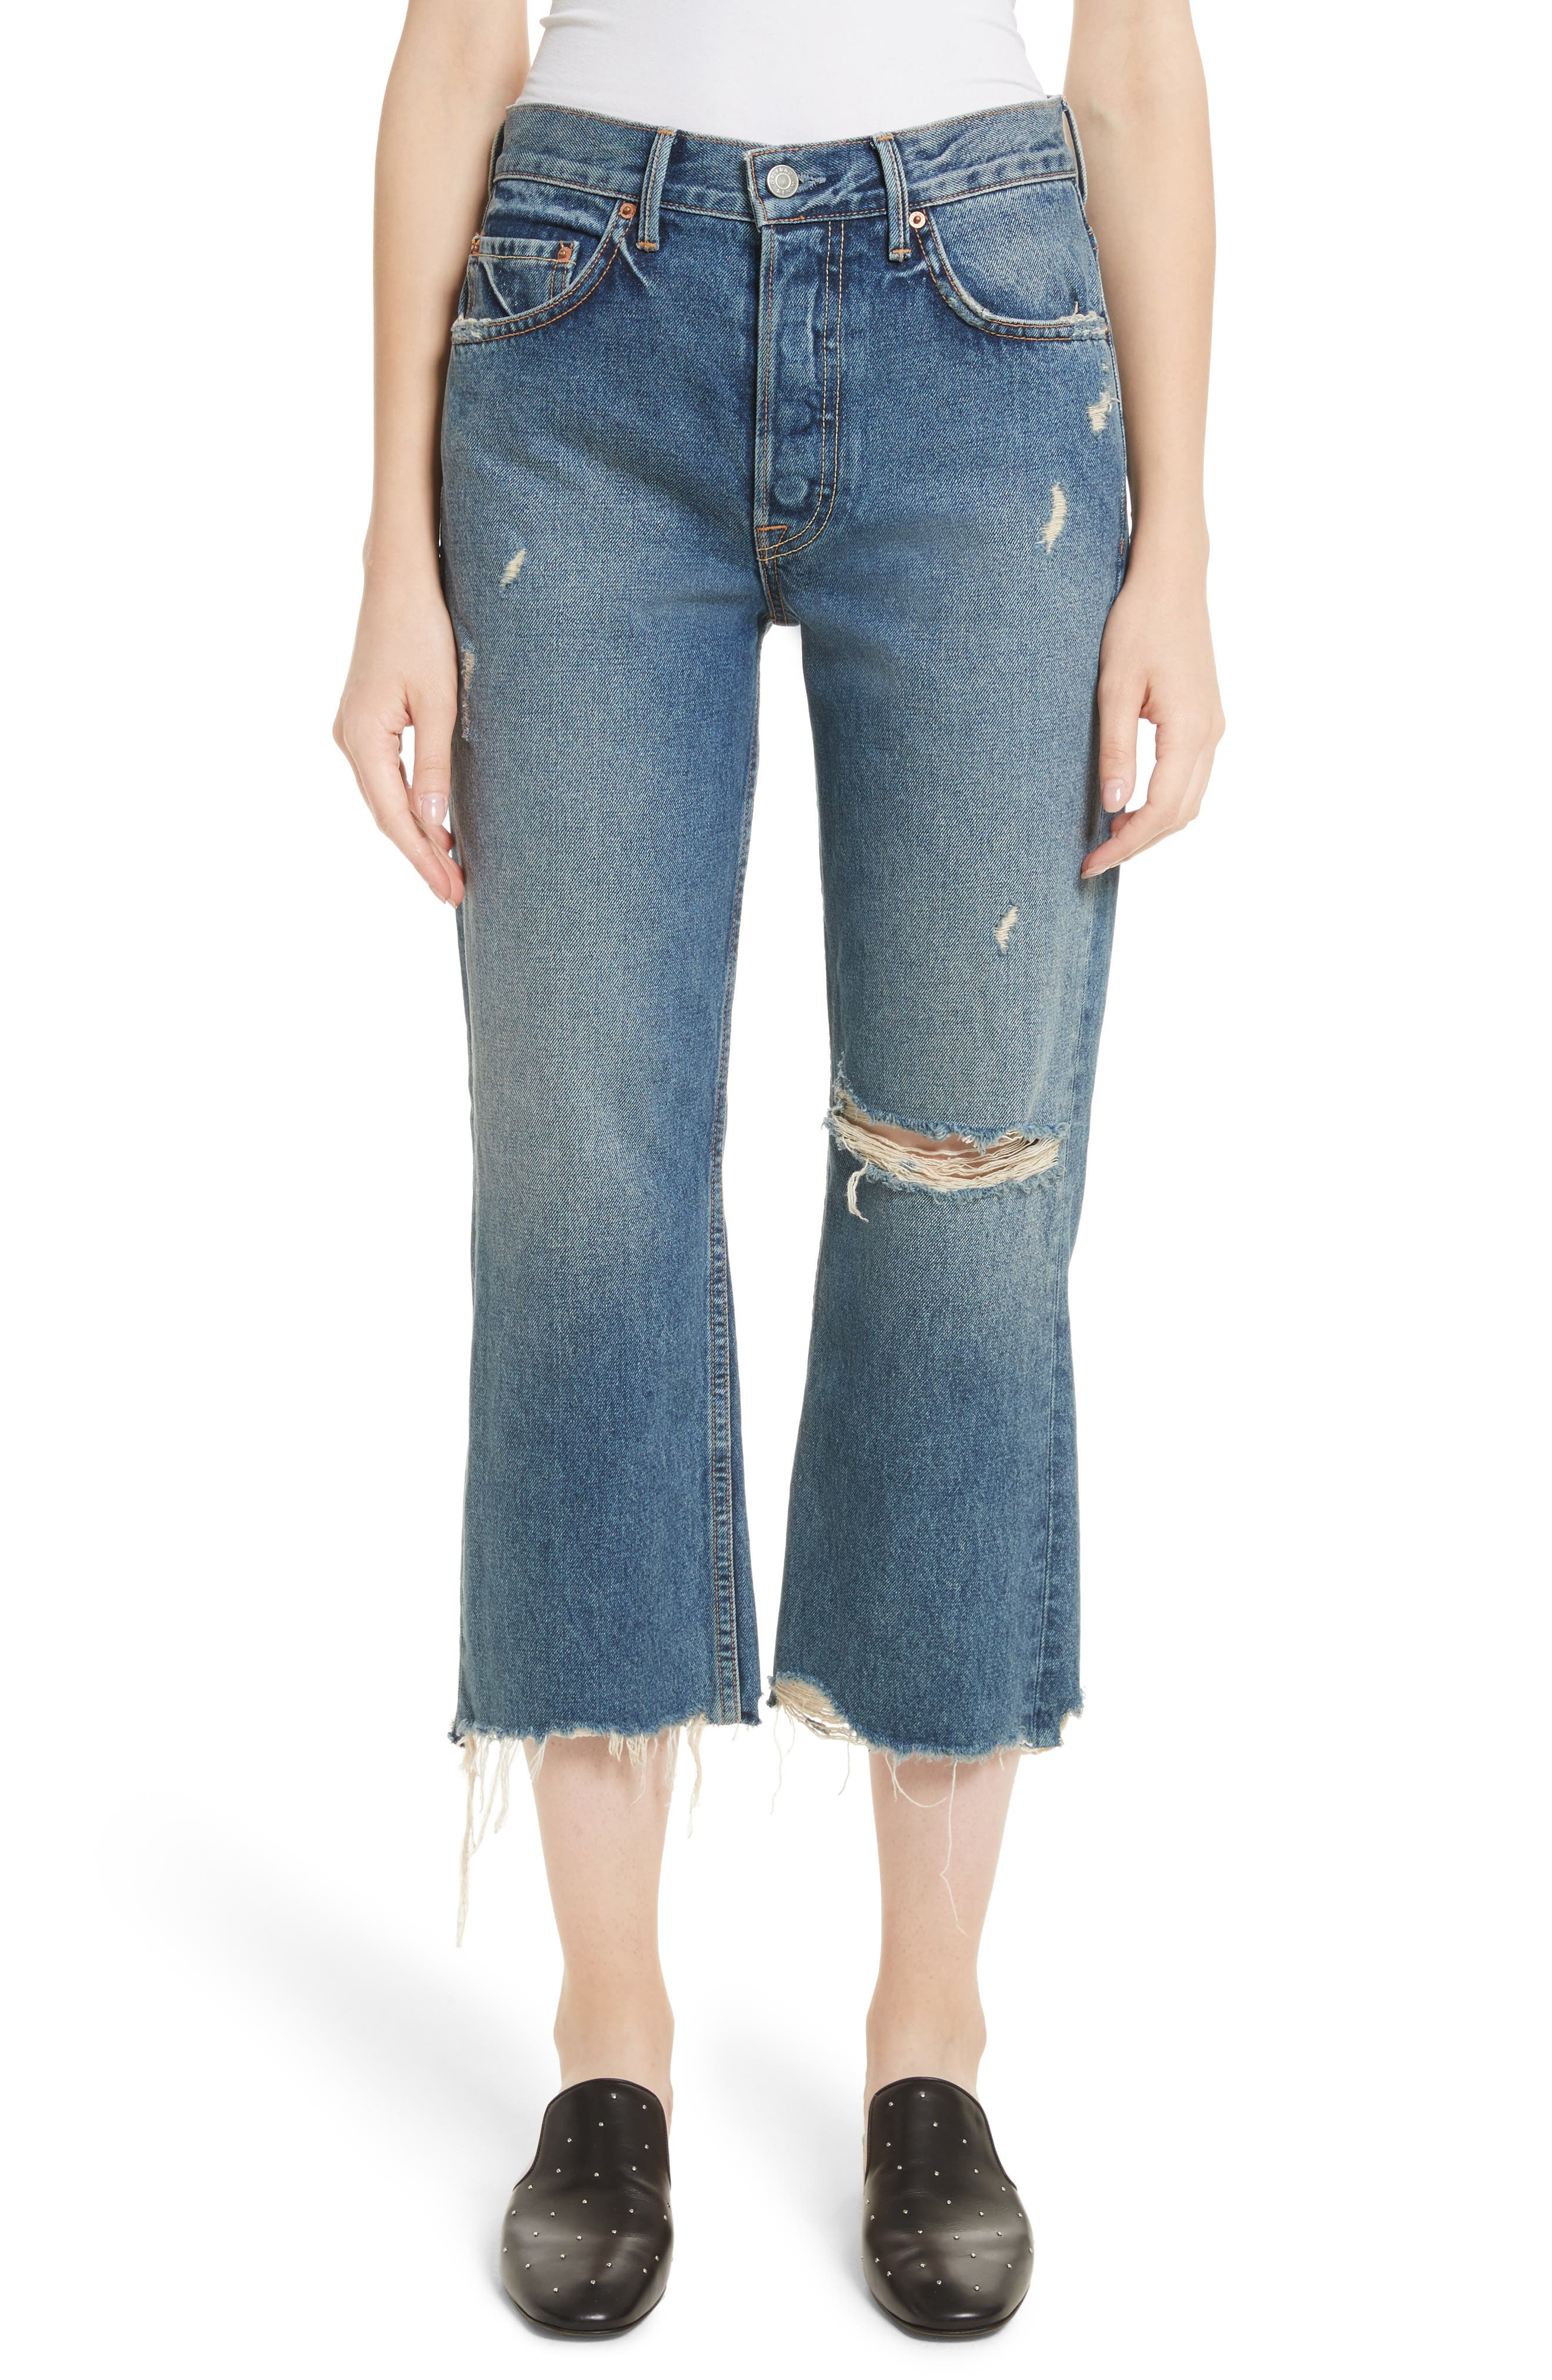 Linda Ripped Rigid High Waist Pop Crop Jeans,                             Main thumbnail 1, color,                             489